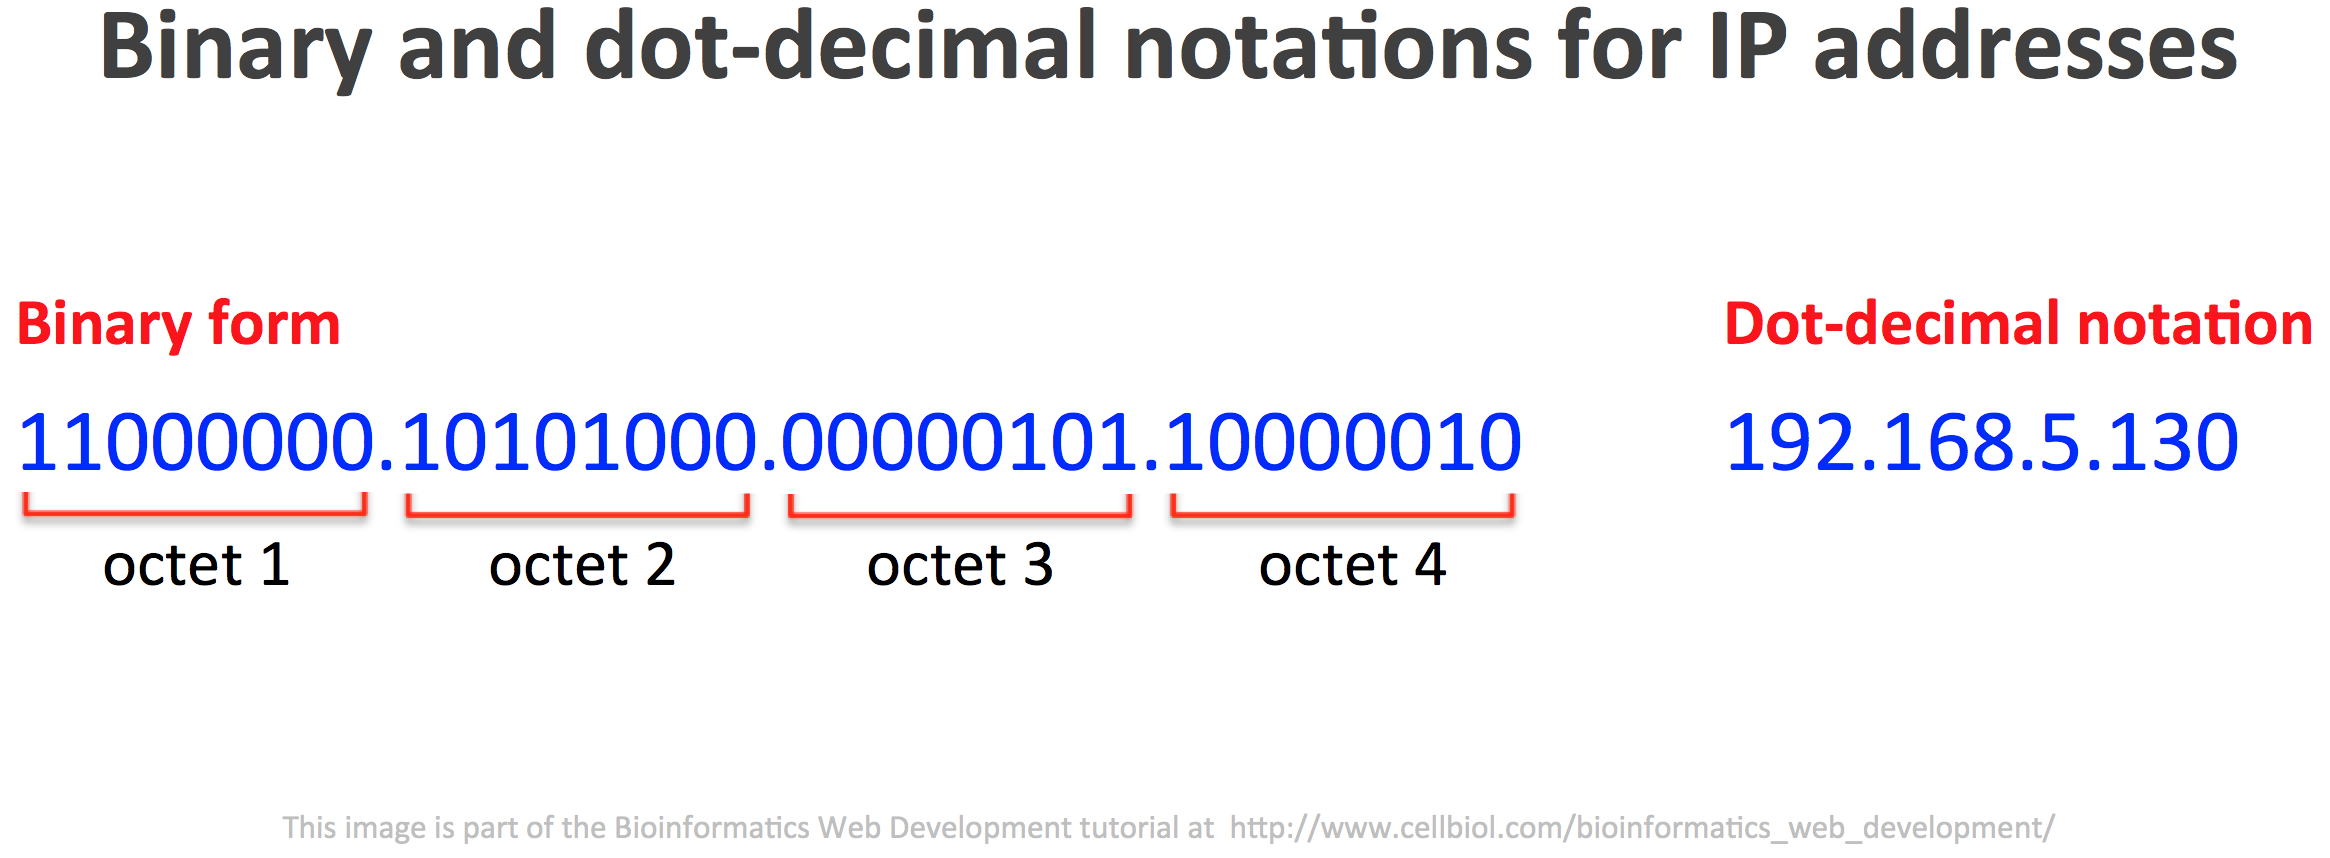 IPv4 IP addresses are 32 bits numbers. In this figure the subdivision in 8 bytes (octects) of an IP address is shown, together with the translation in dot-decimal notation (the one that is usually visible and used for handling IP addresses)